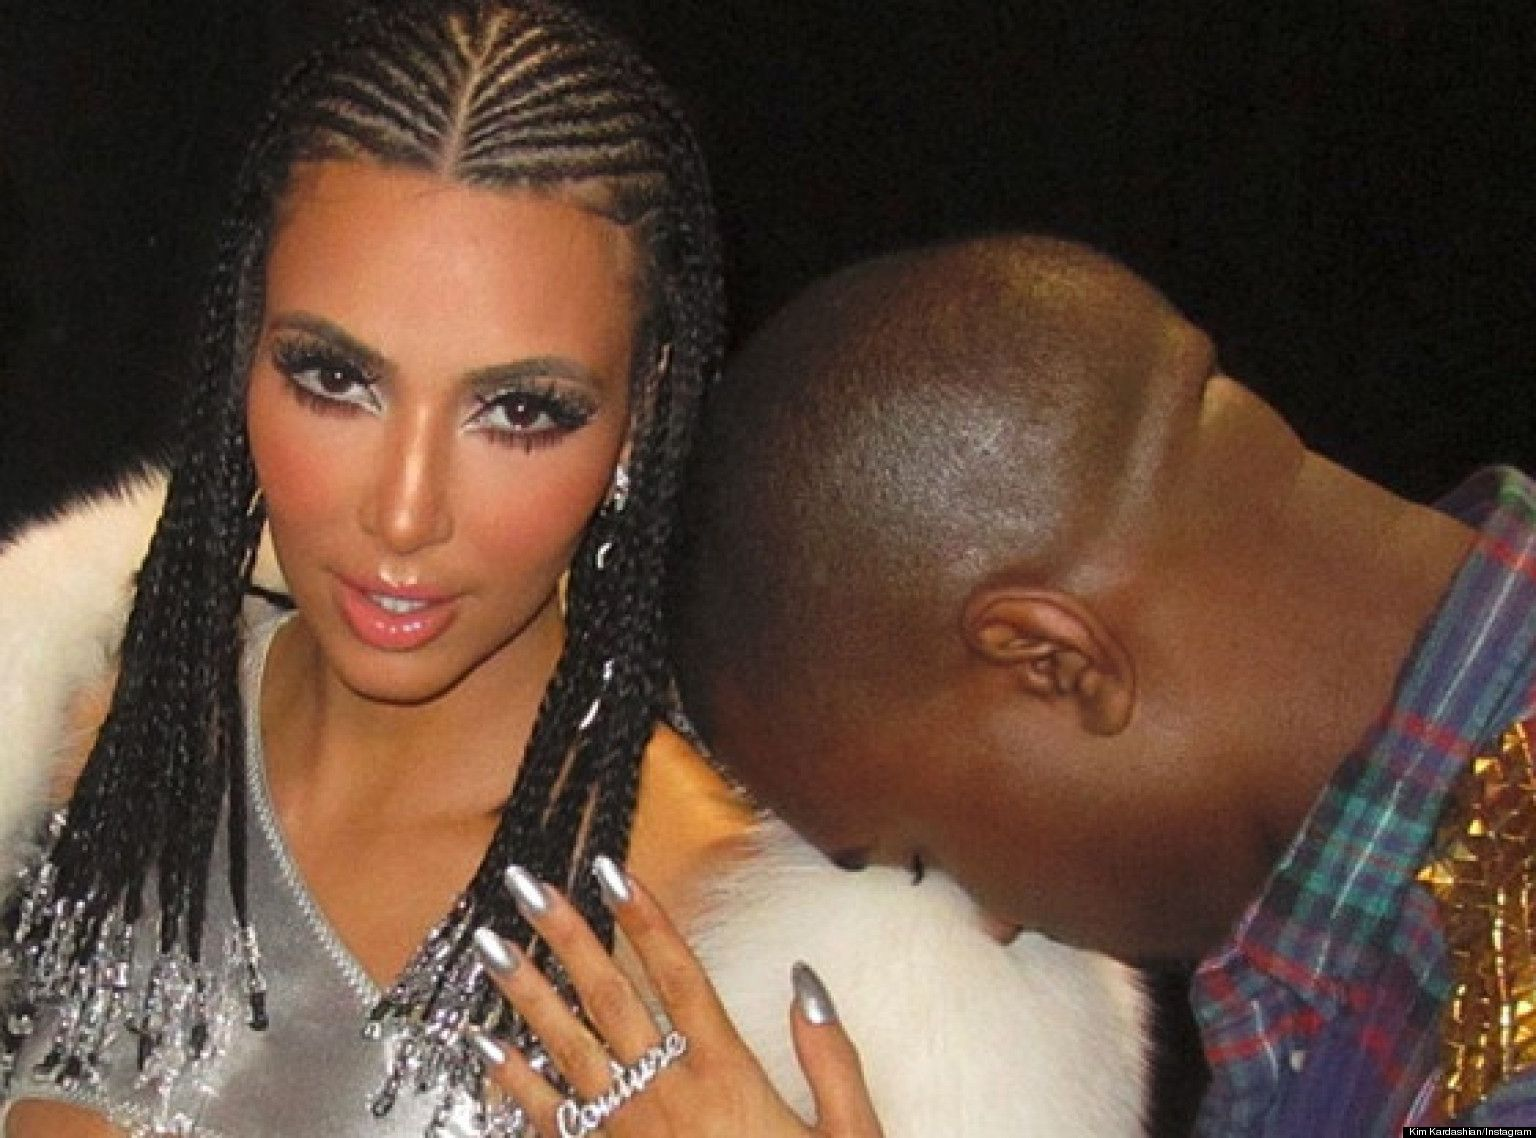 10 of the Worst Celebrity Hairstyles